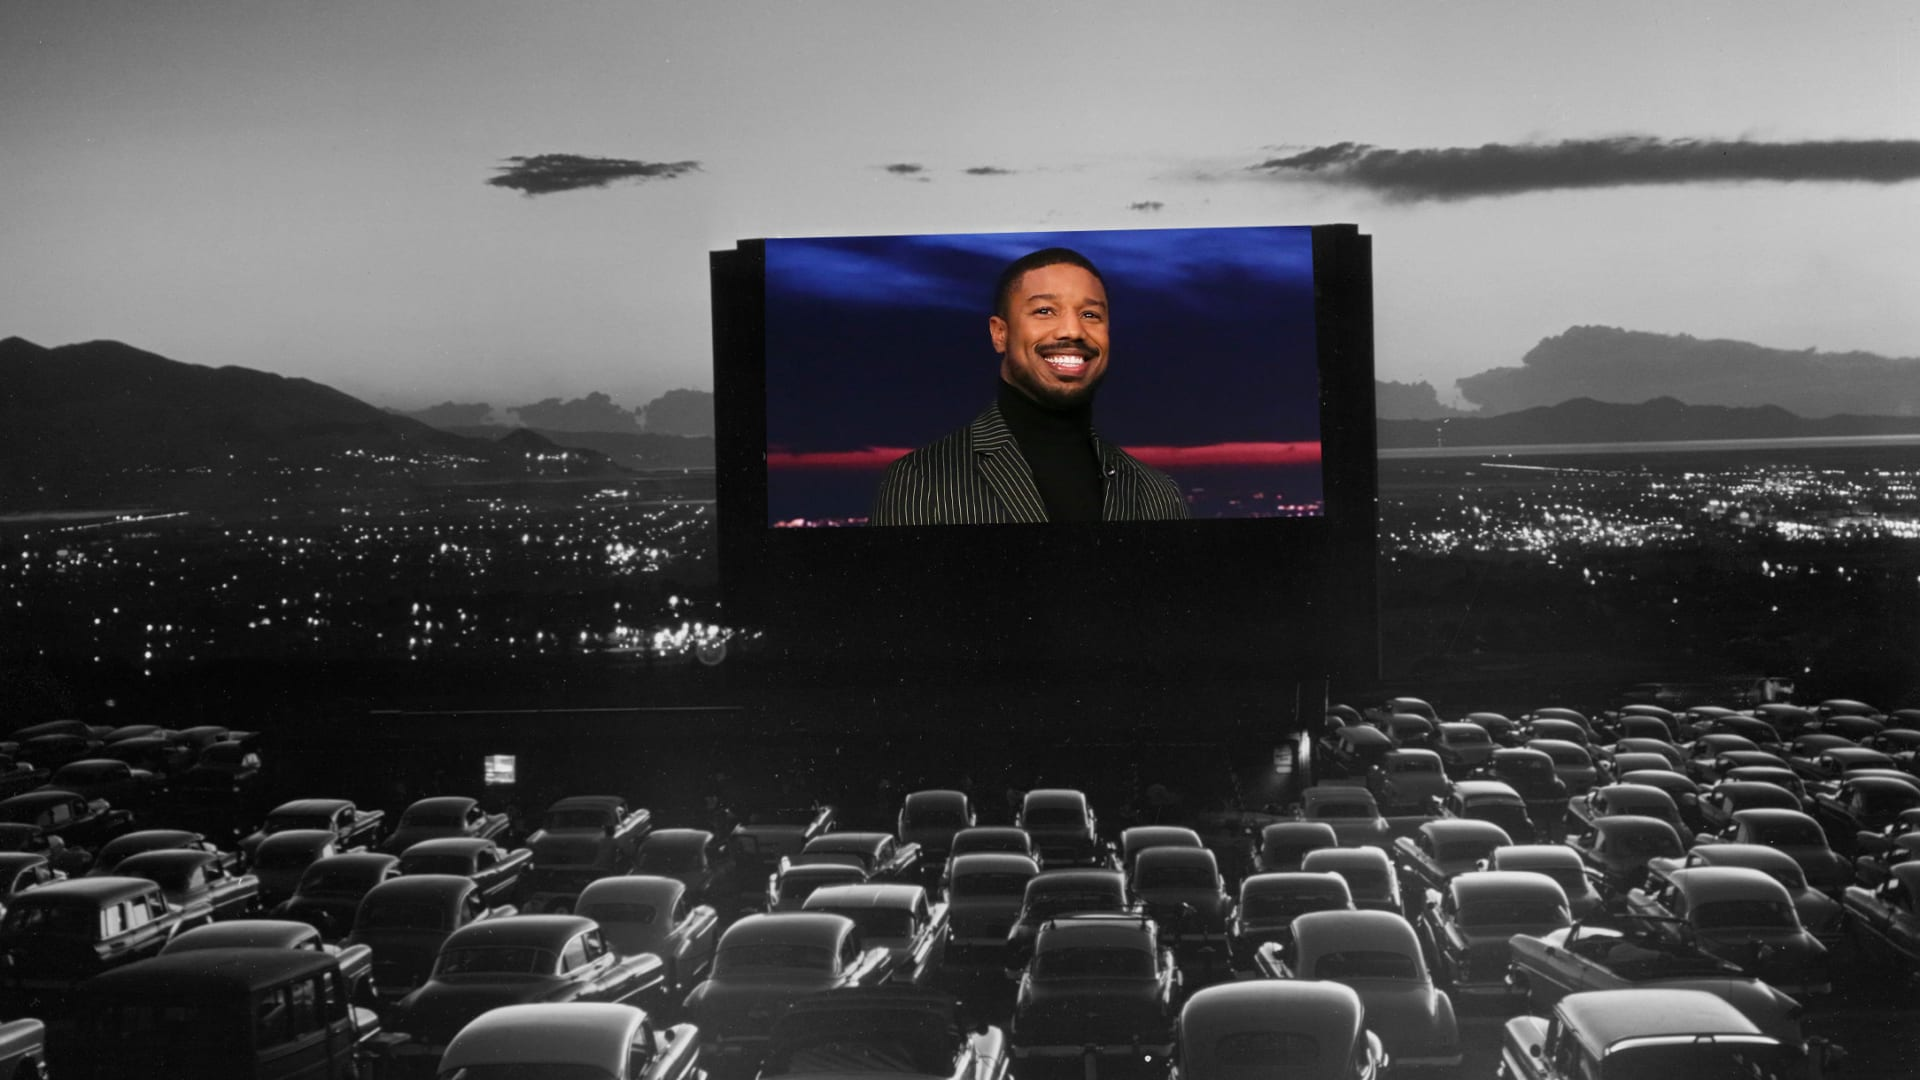 Actor and producer Michael B. Jordan is giving back with summer drive-in movie shows.